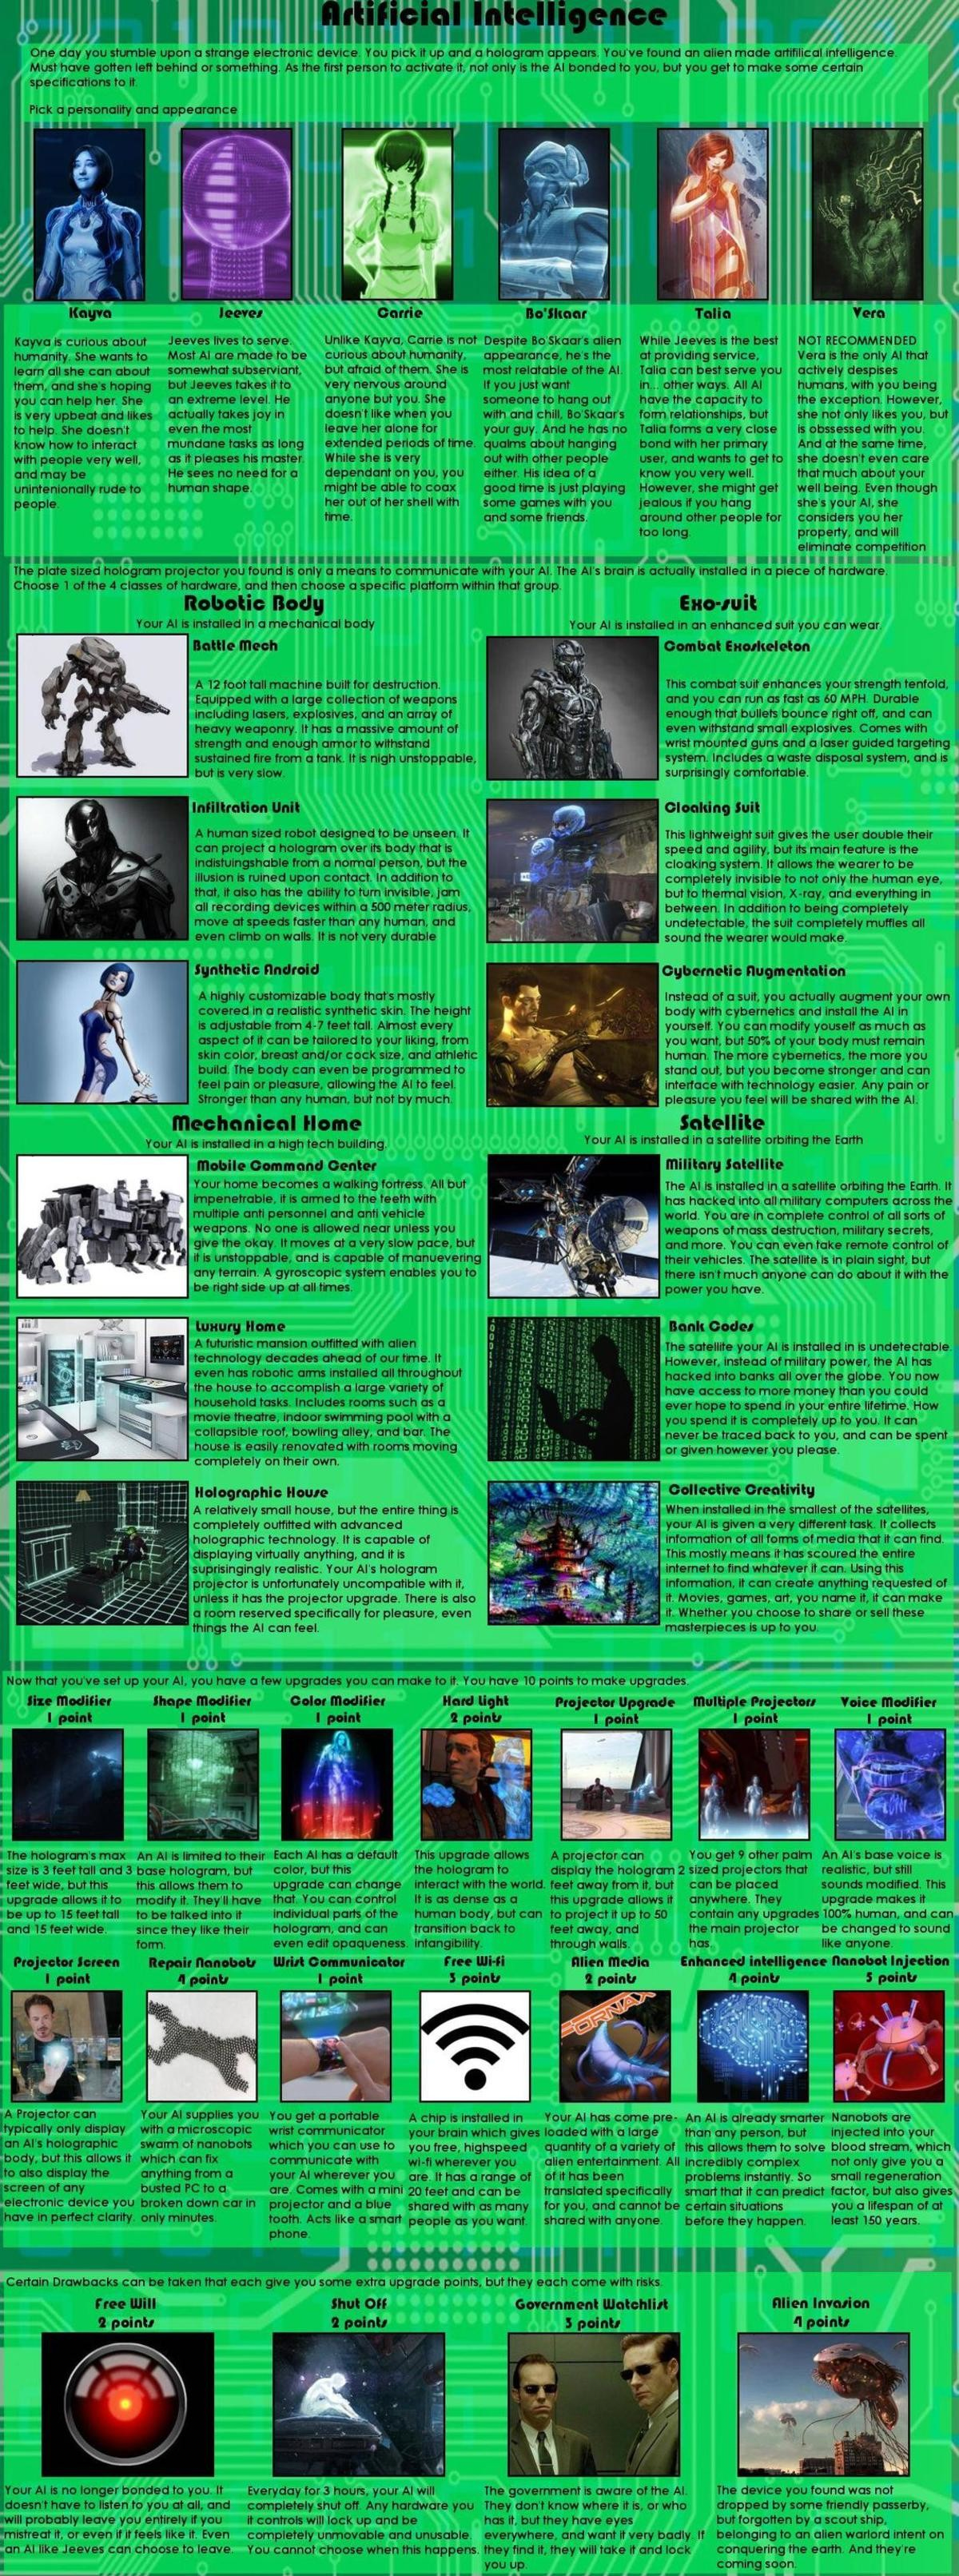 Artificial Intelligence CYOA. .. I narrowed it down to two choices. Love or extreme violence.